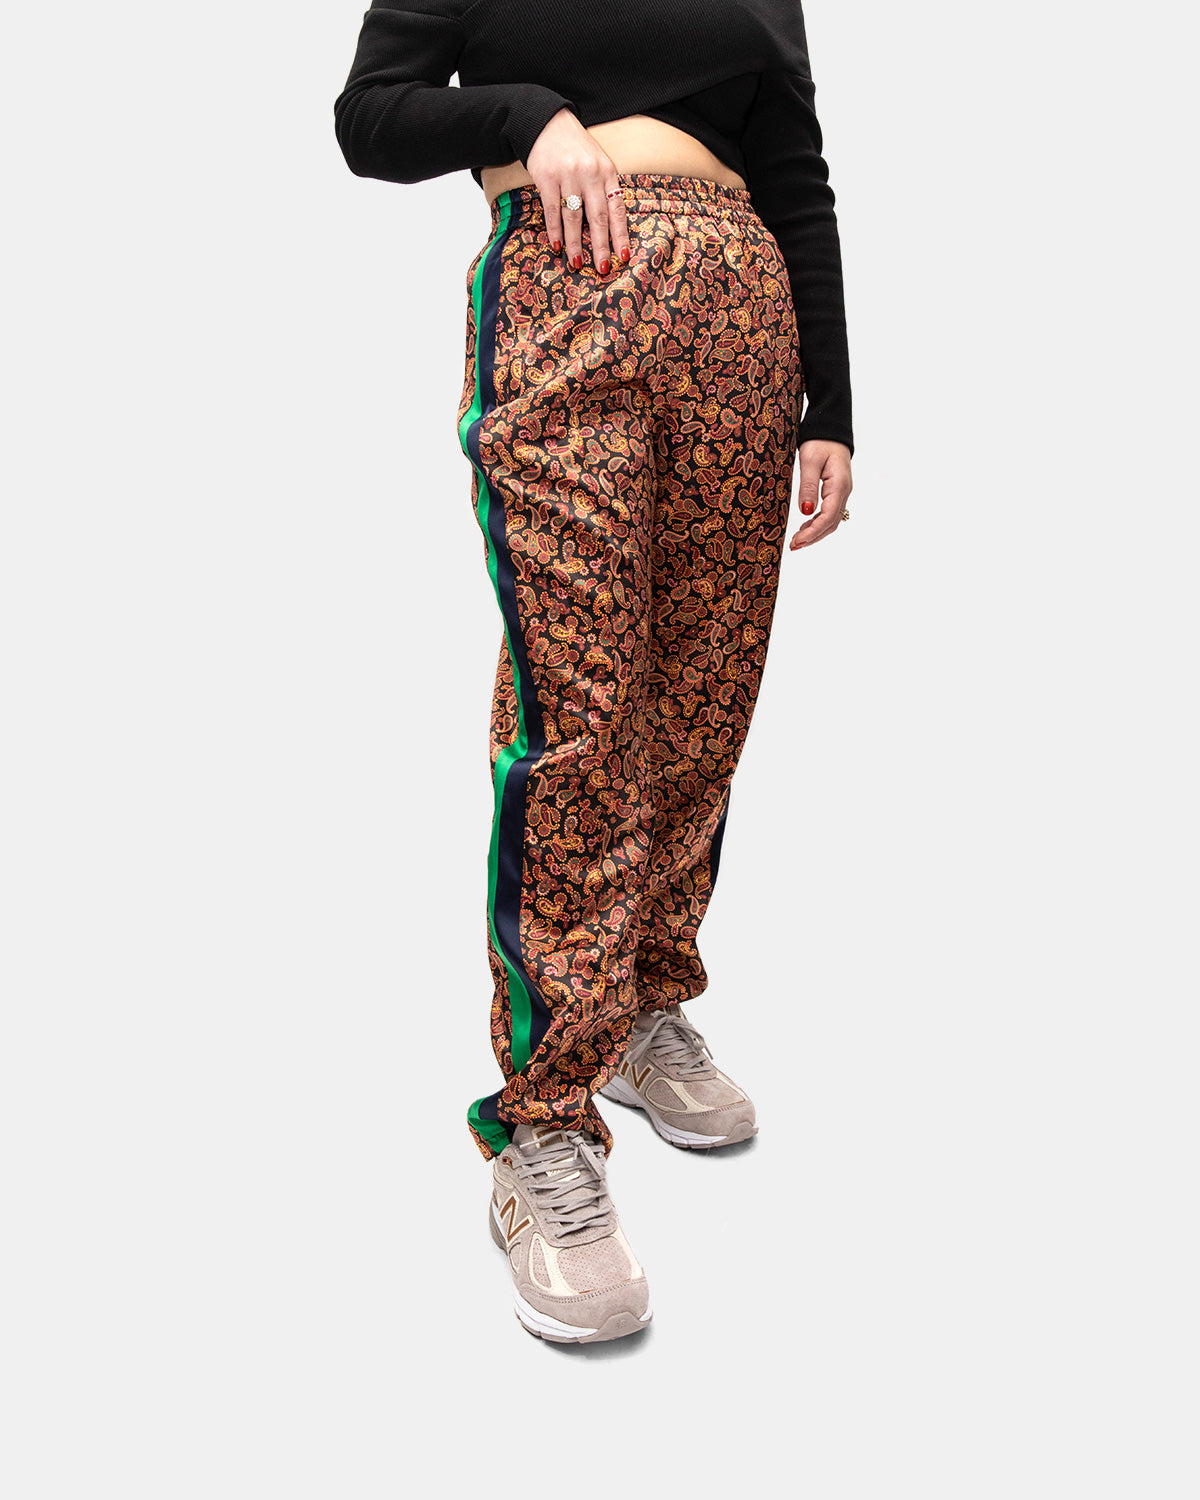 Opening Ceremony - Women's Reversible Track Pant (Prune)